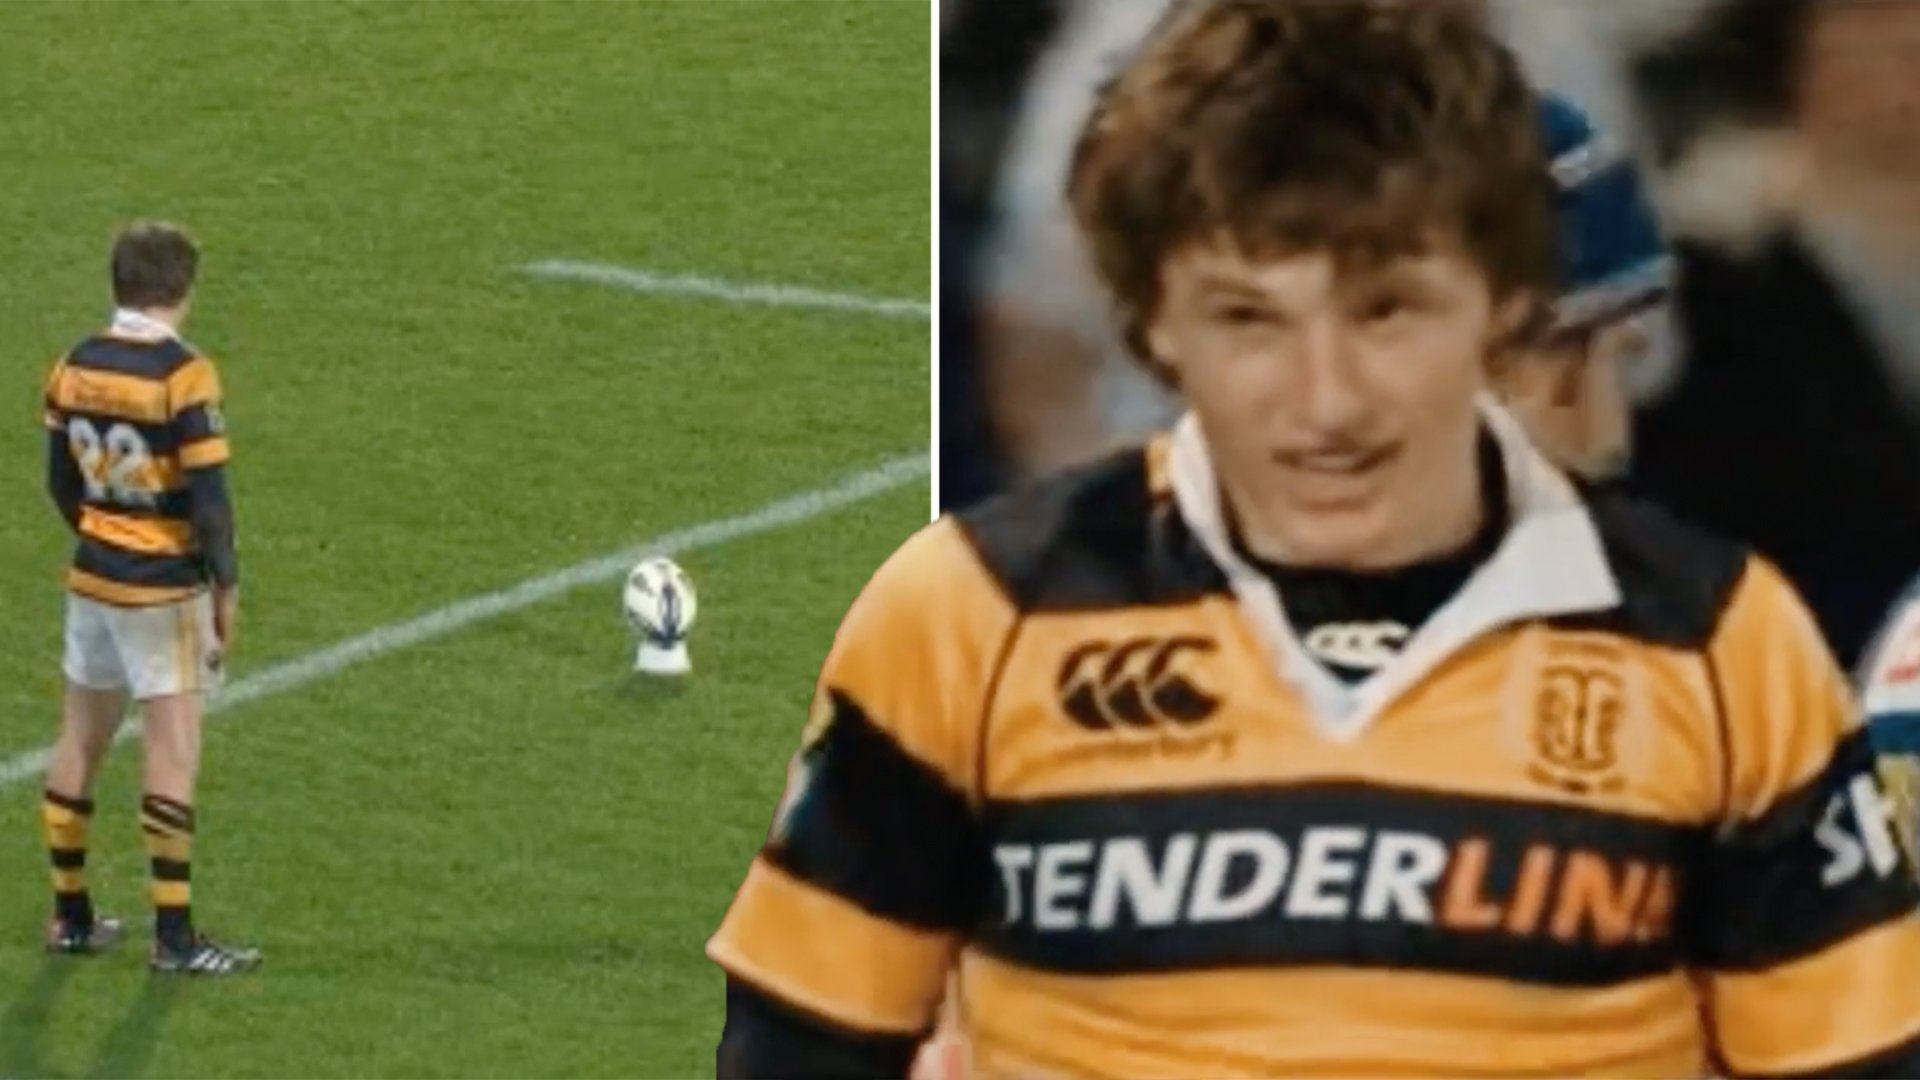 Rugby fan manages to find archived footage of young Beauden Barrett - he was on another level